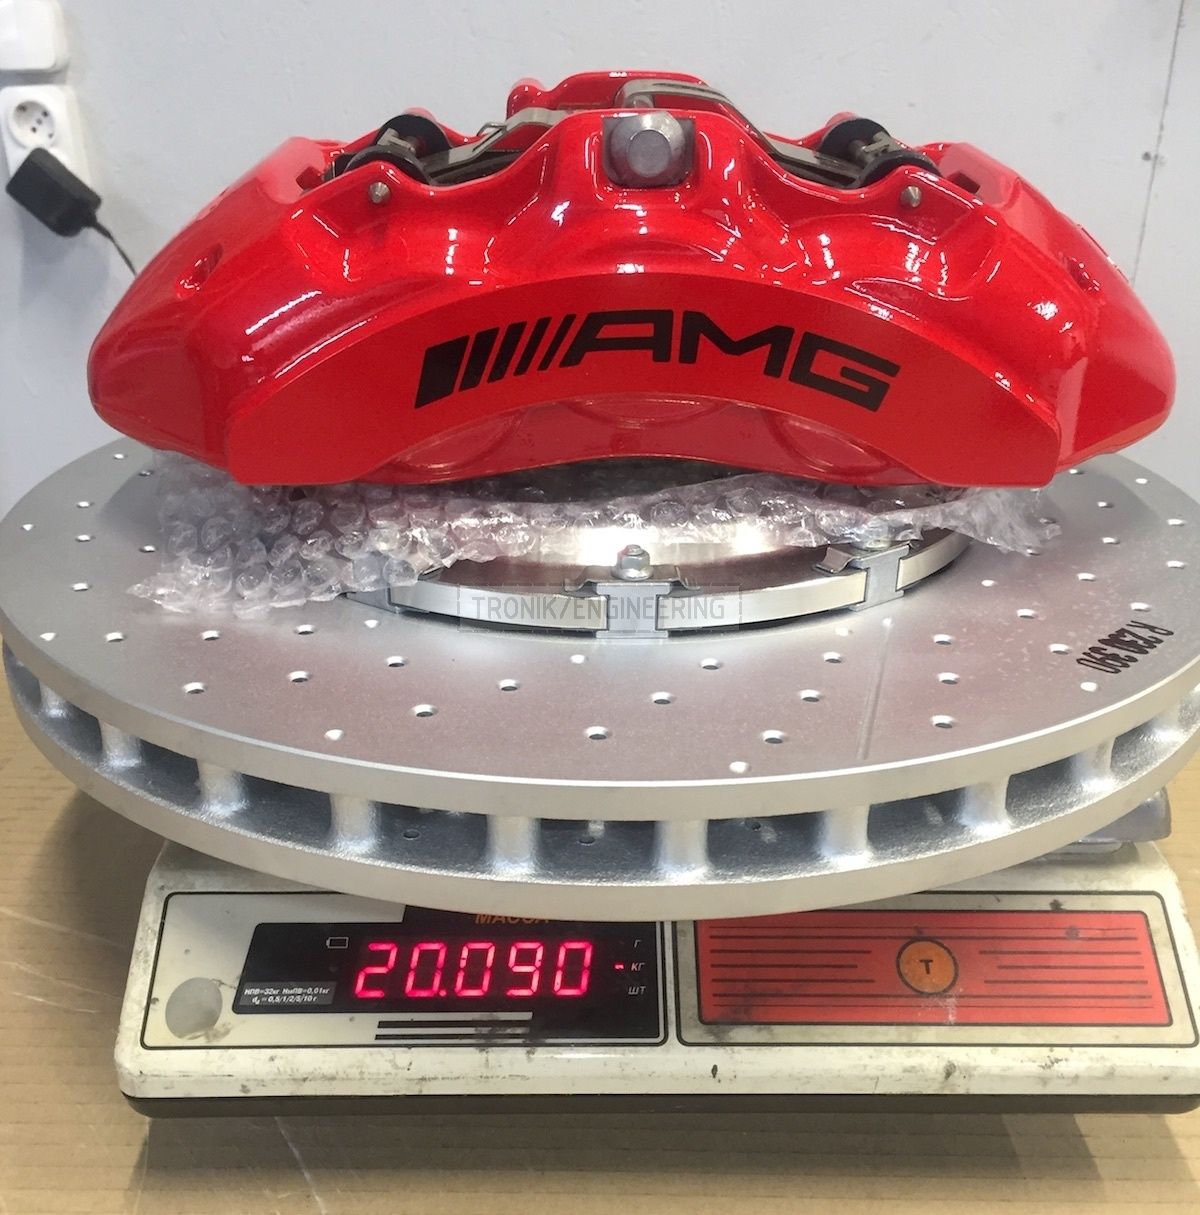 assembled brake system set weight is 20 kg